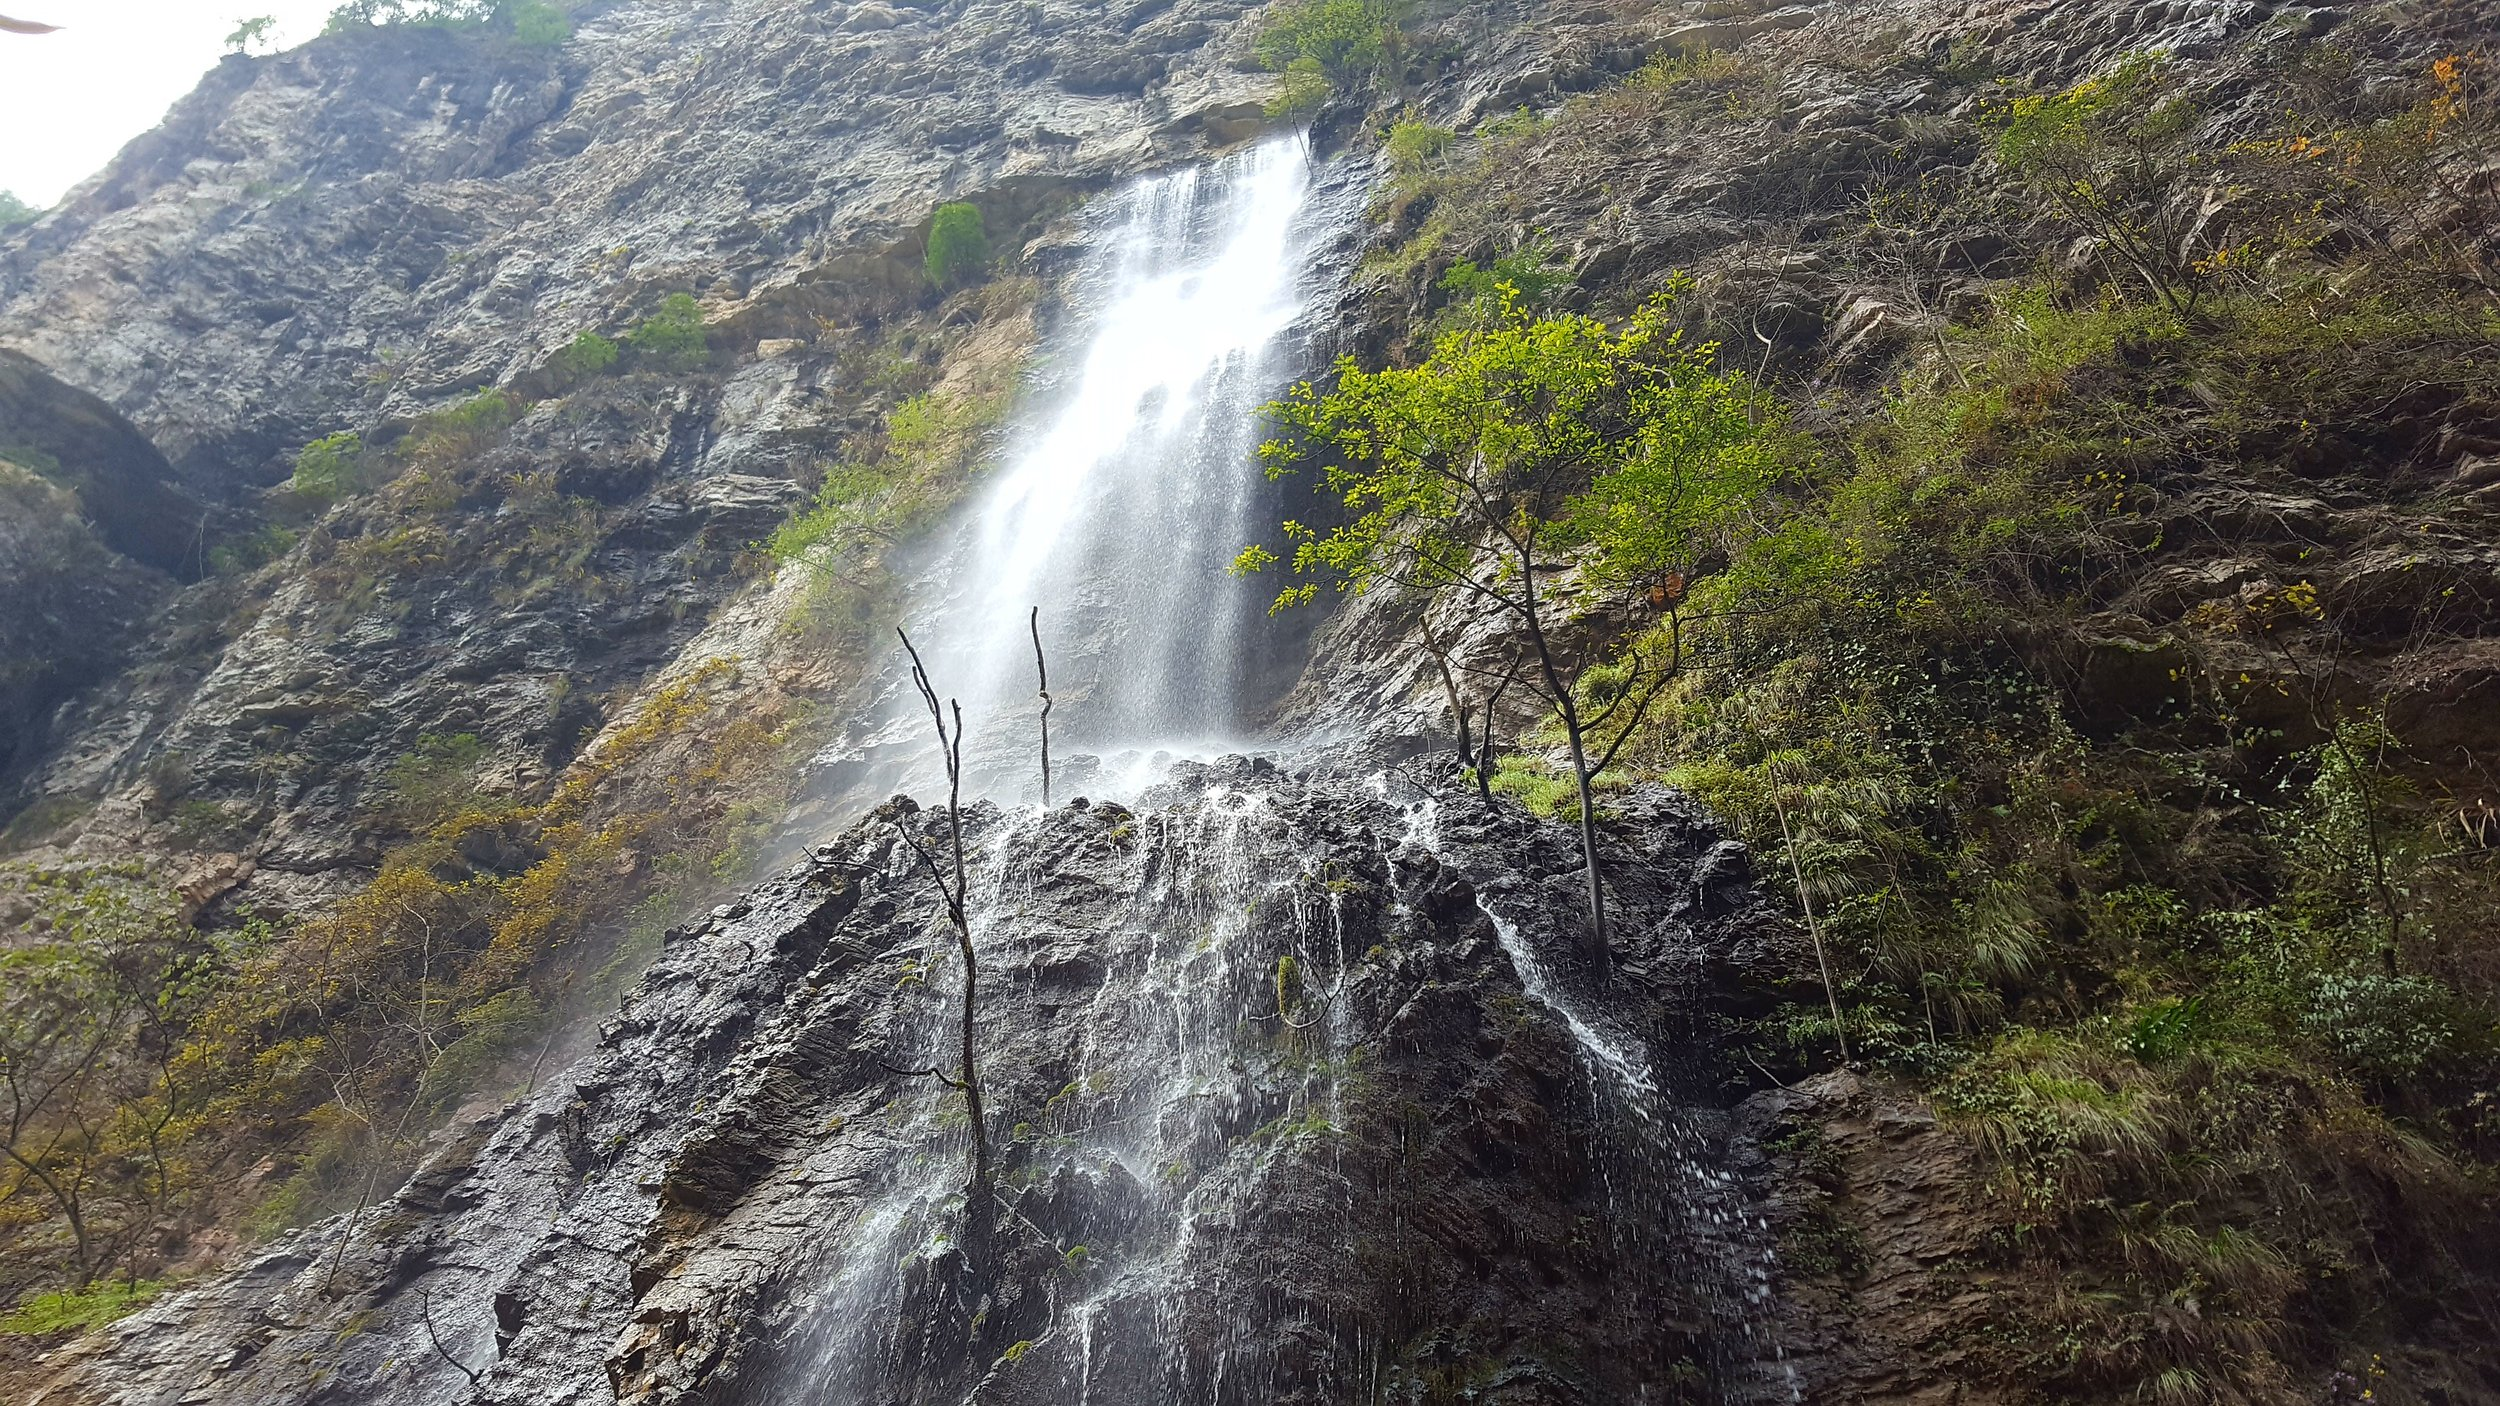 Reading through countless blog articles on China helped me find this waterfall